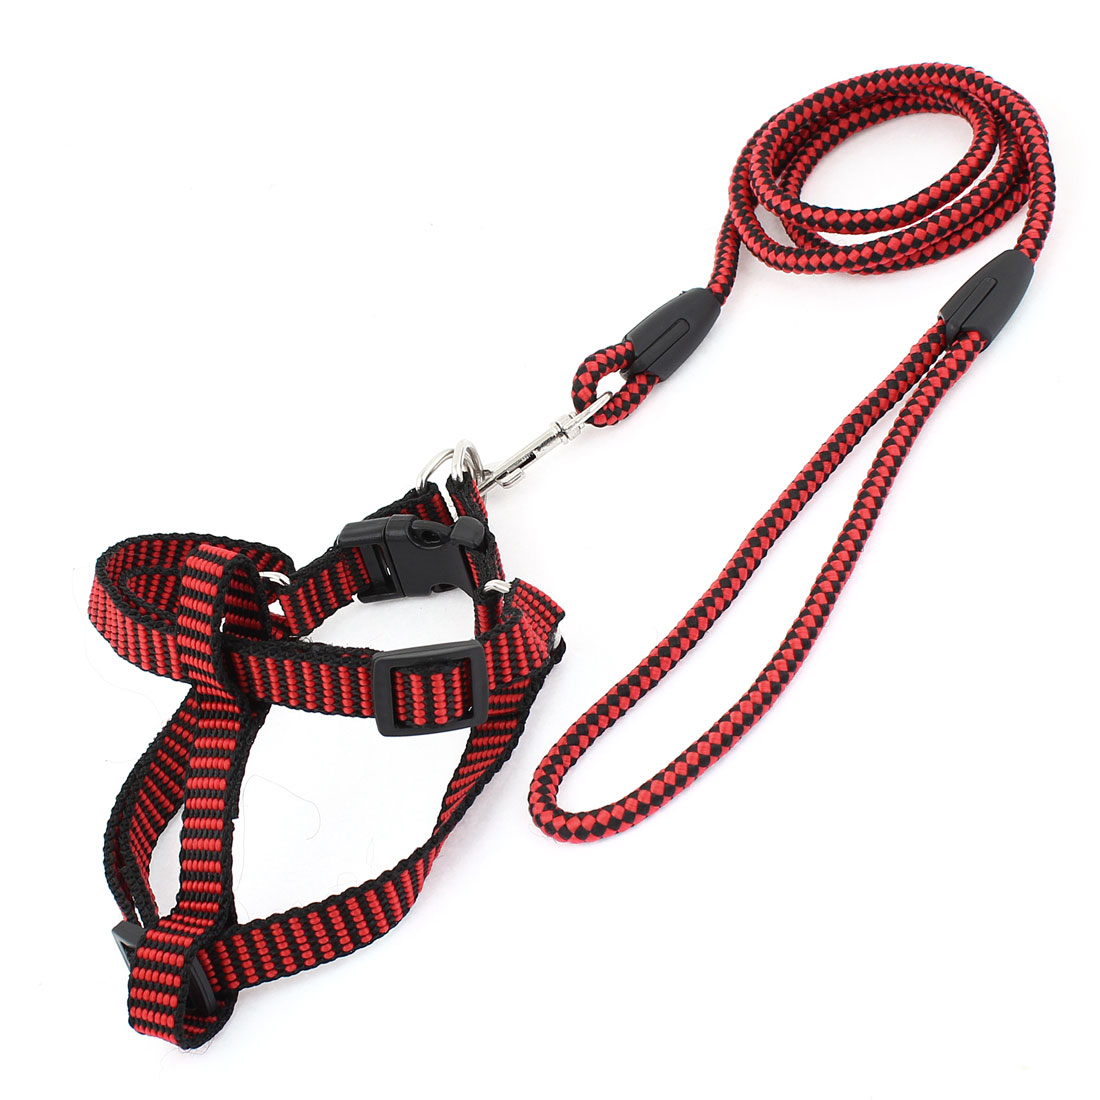 0.6cm Wide Red Black Check Pattern Adjustable Dog Harness Leash Size XL